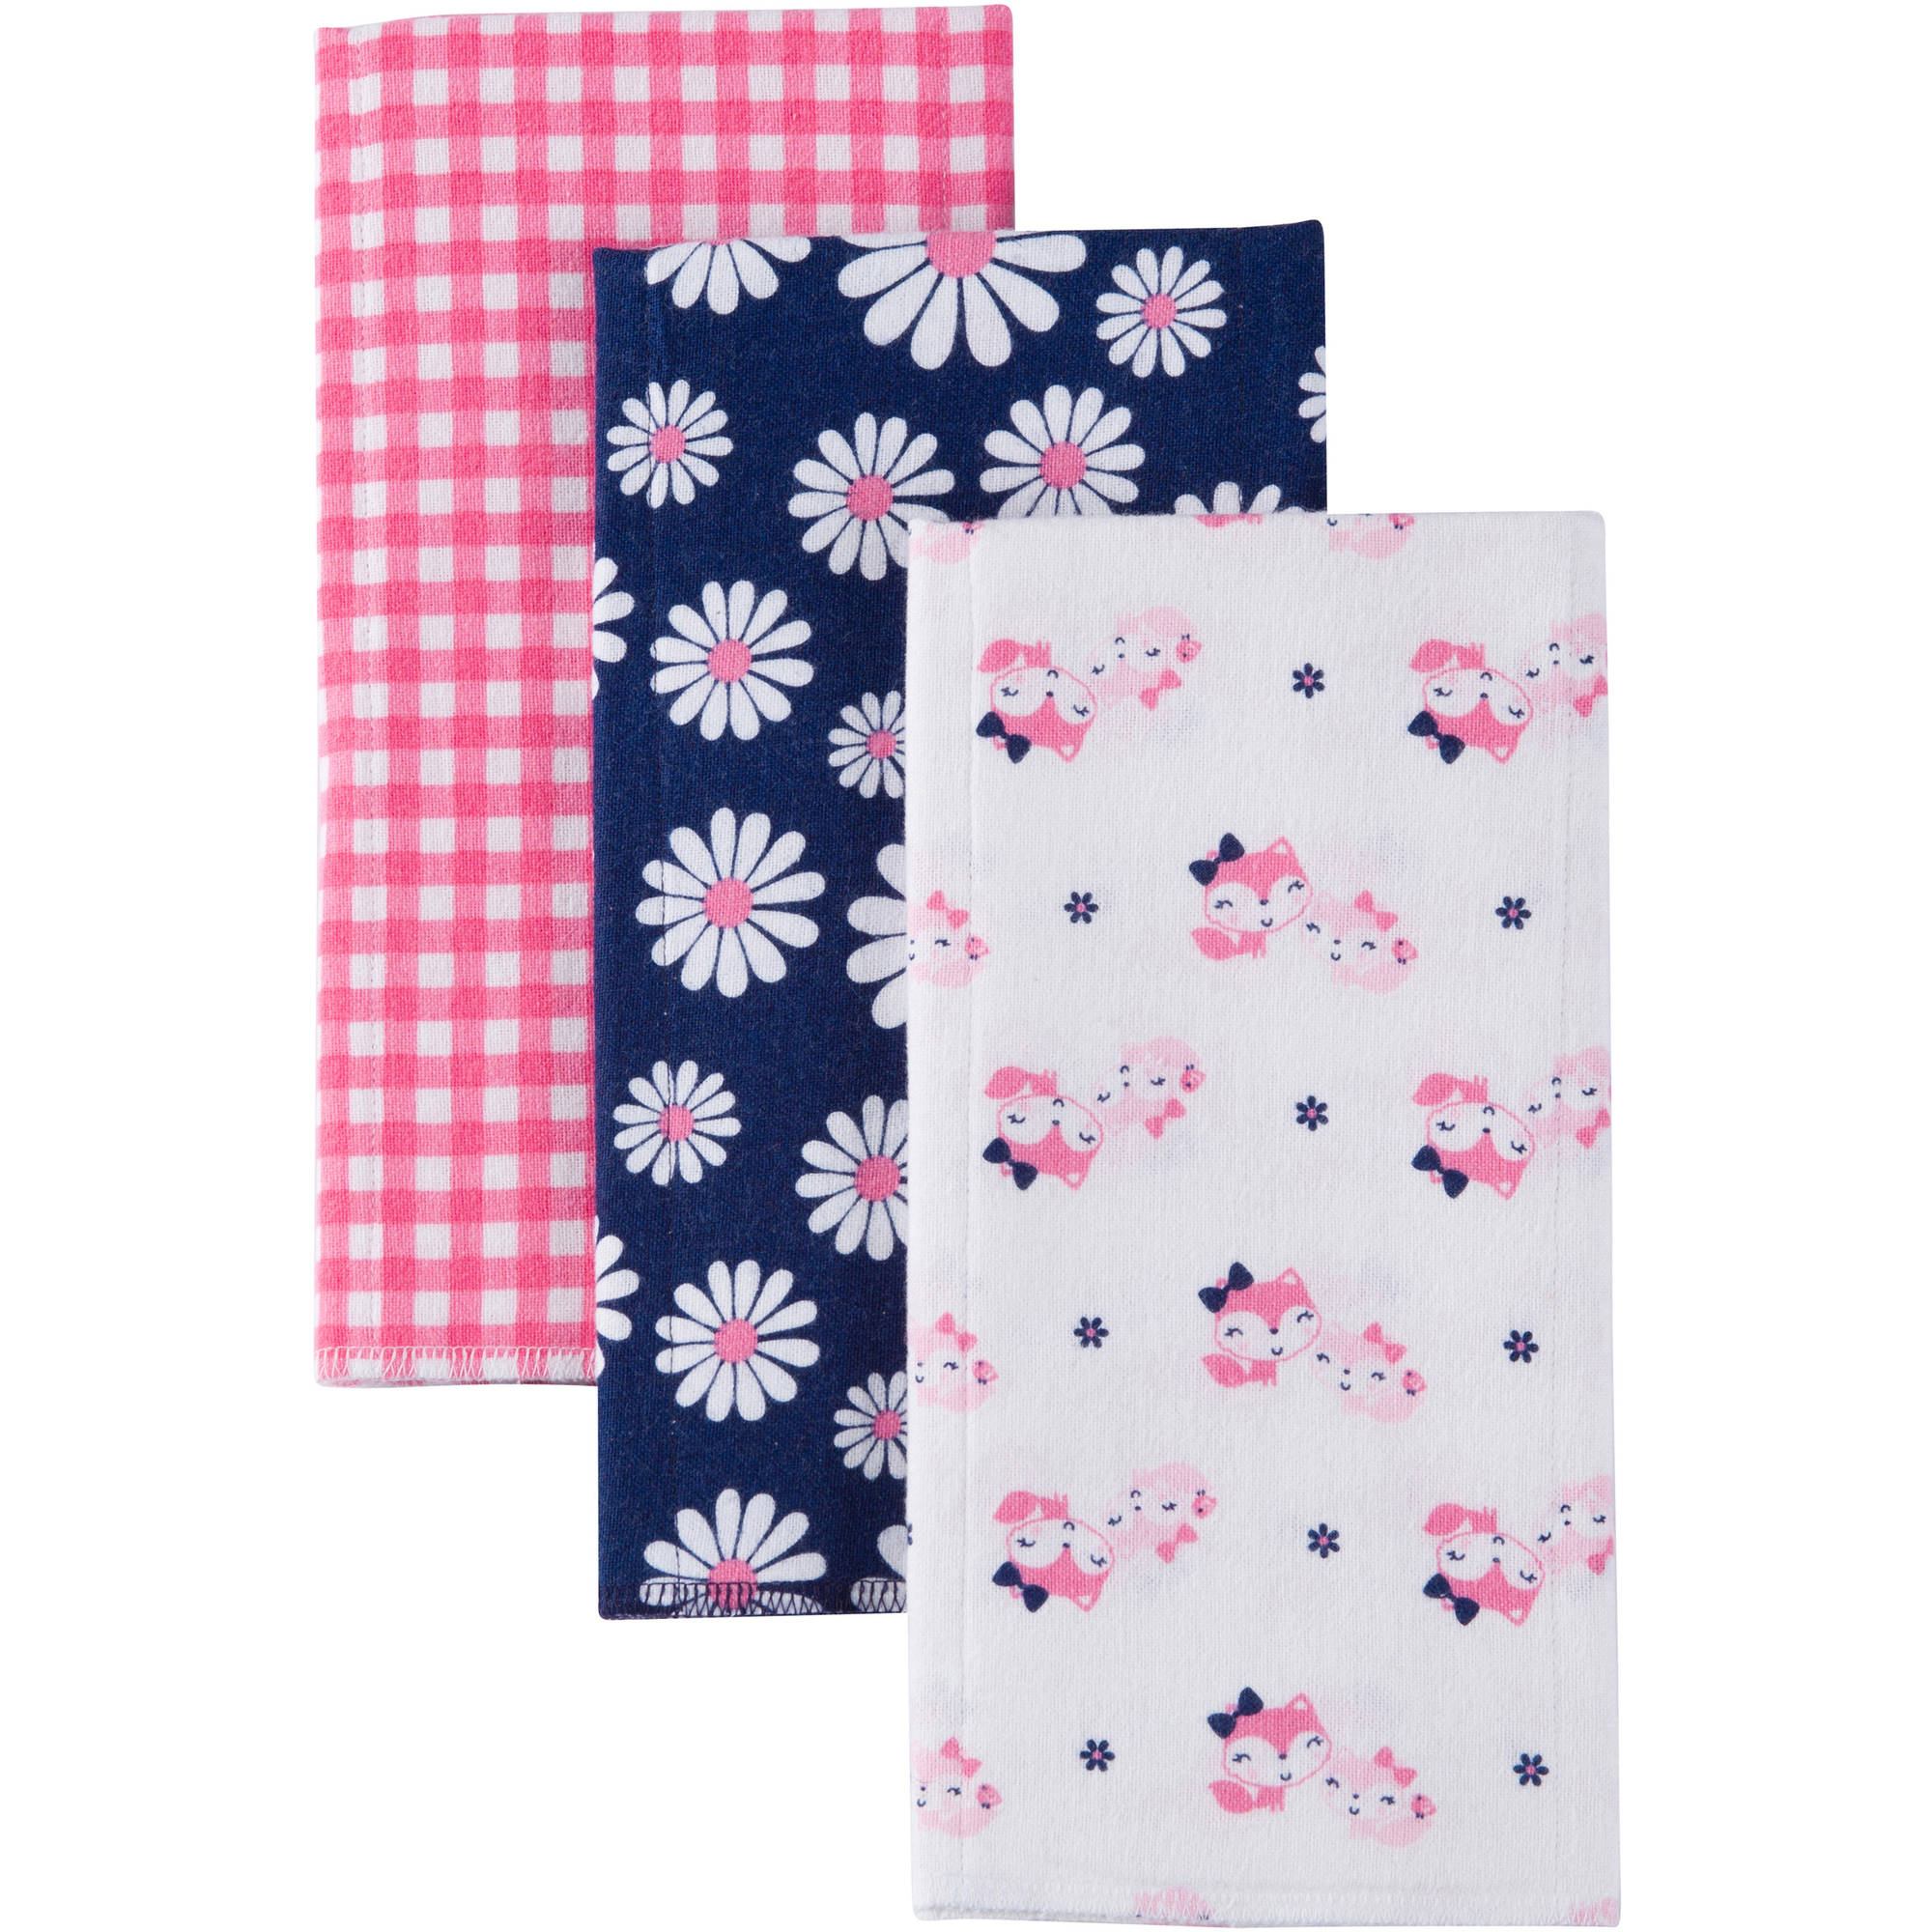 Gerber Baby Girl Flannel Burp Cloths, 3-Pack